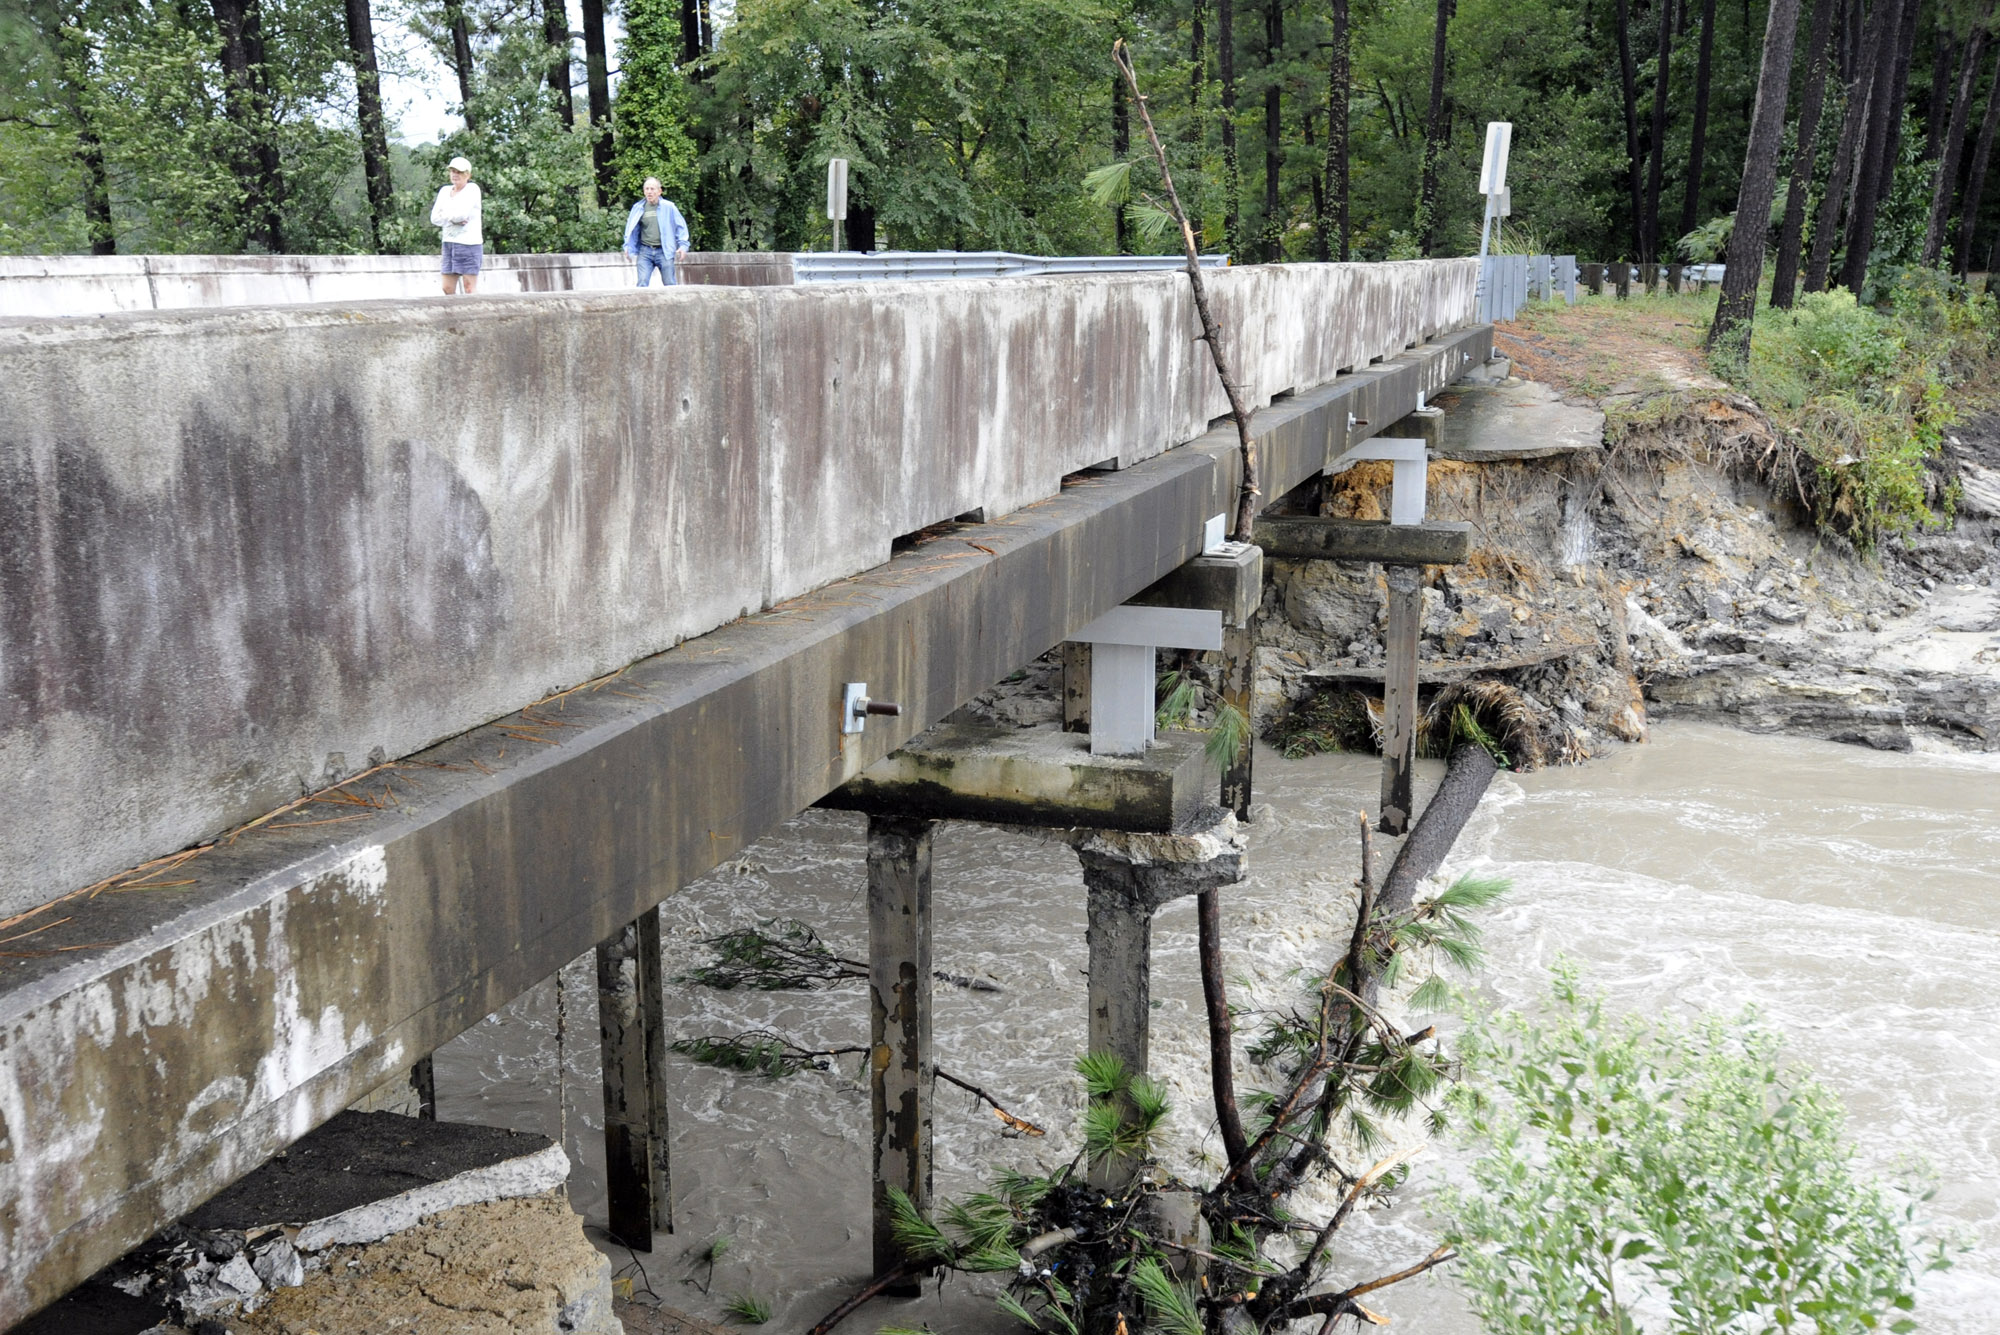 FILE- In this Monday, Oct. 5, 2015 file photo, Residents of a lakeside neighborhood walk across Overcreek Bridge by the remains of a failed dam in Columbia, S.C. Officials say the structure beneath a road collapsed Monday afternoon following days of heavy rain, nearly emptying a lake in a few minutes. No one was injured. South Carolina had problems with crumbling roads and bridges and old drinking water systems and dams long before the historic floods of the past week. Now the state faces what will likely be hundreds of millions if not billions of dollars of bills to fix washed out roads and bridges and destroyed dams. (AP Photo/Jay Reeves, File)